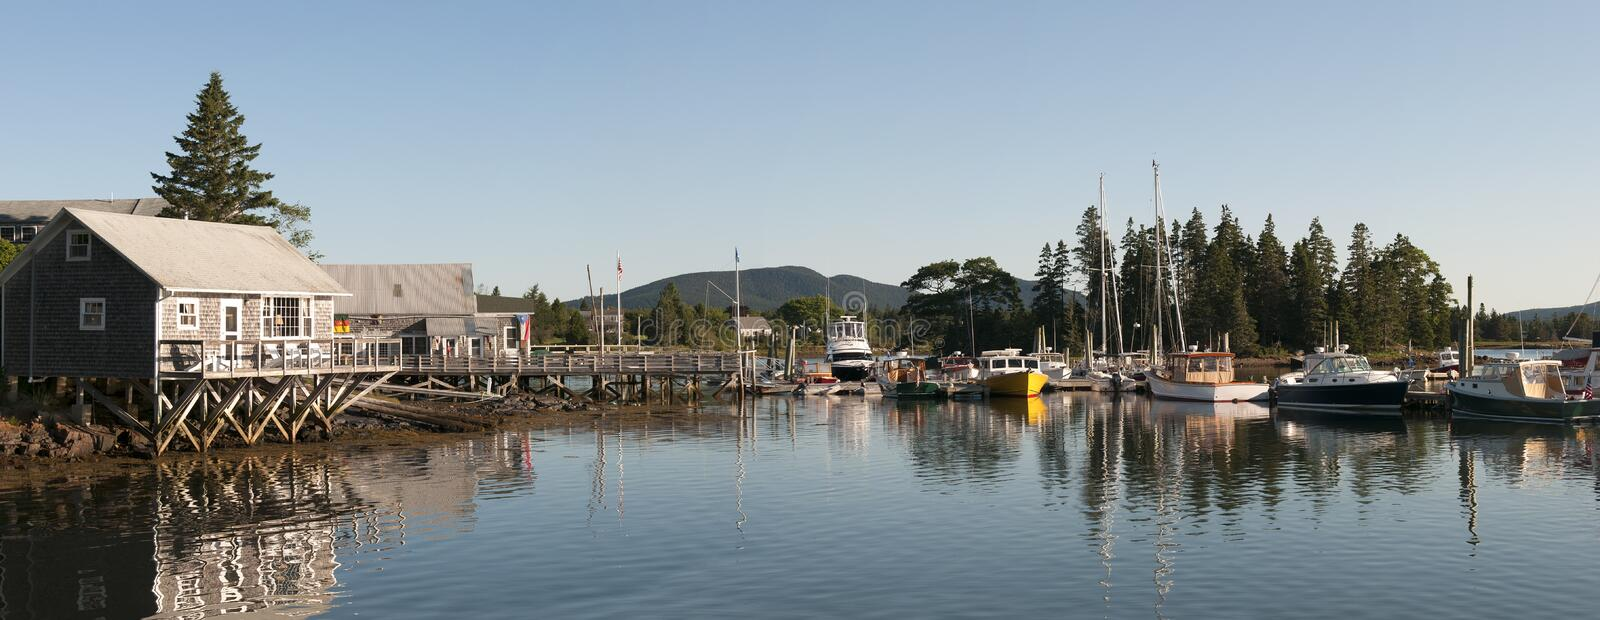 Download Scenic Maine Harbor Stock Images - Image: 32956864